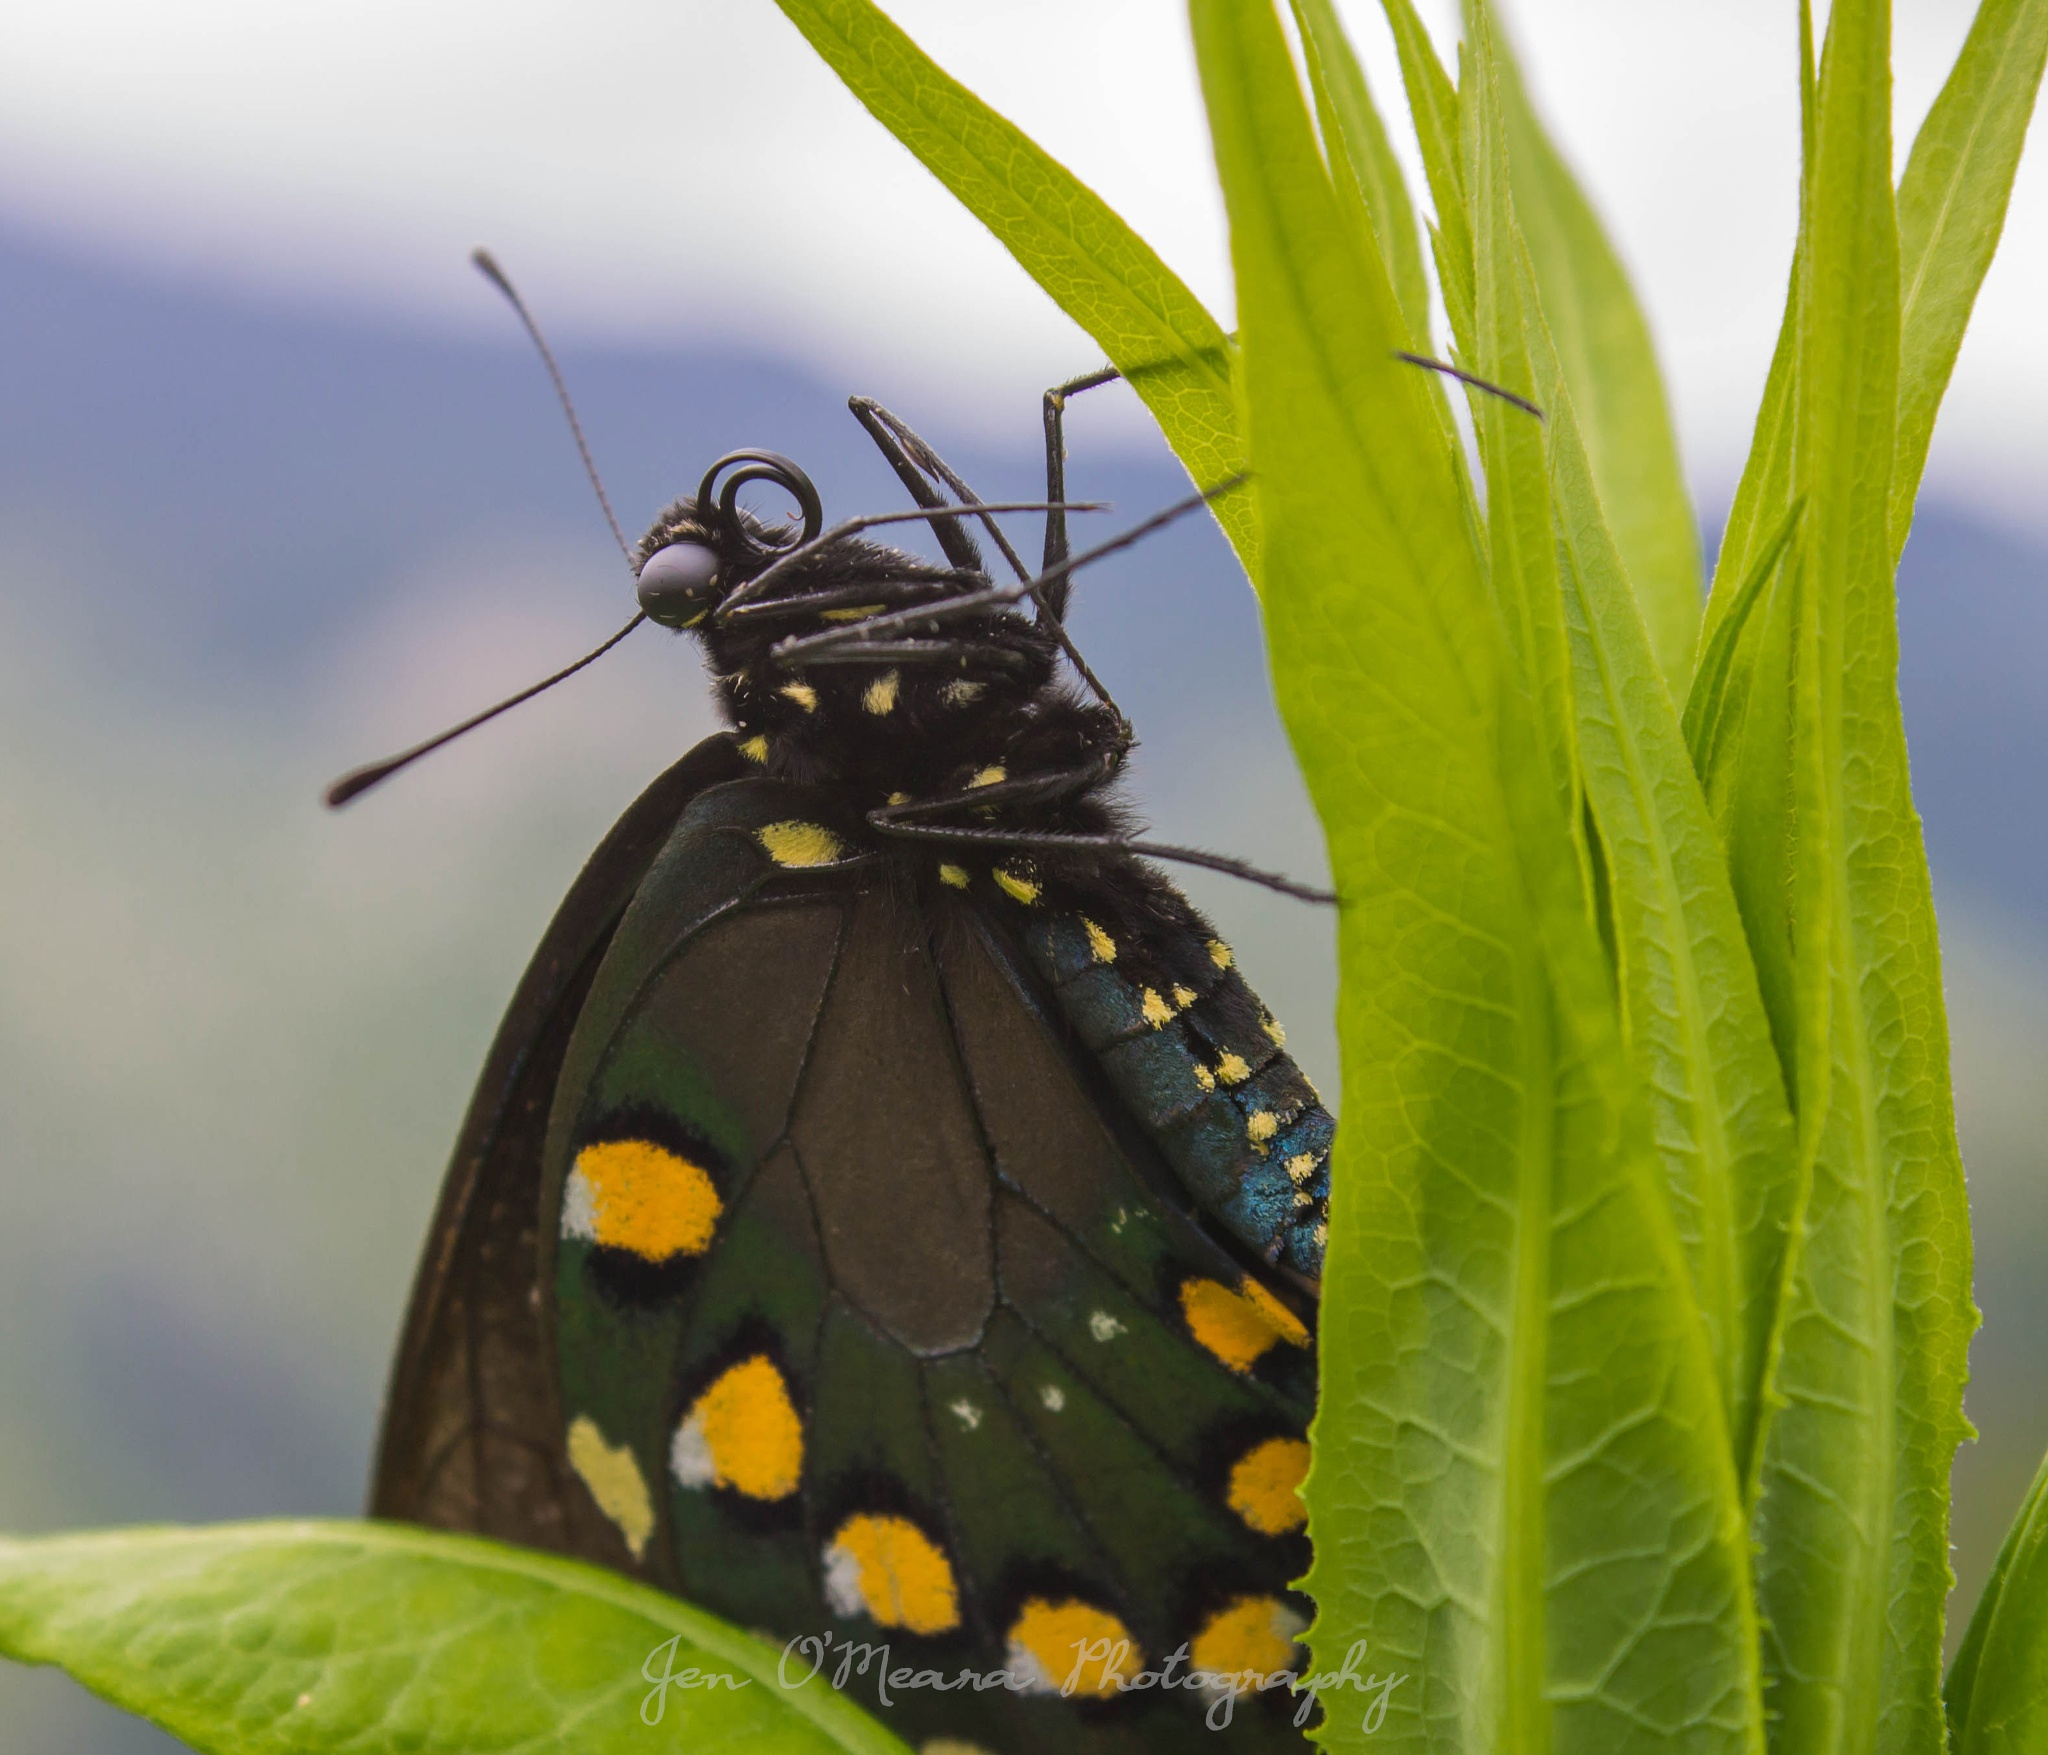 Just when the caterpillar thought the world was over, she became a butterfly by Jen O'Meara